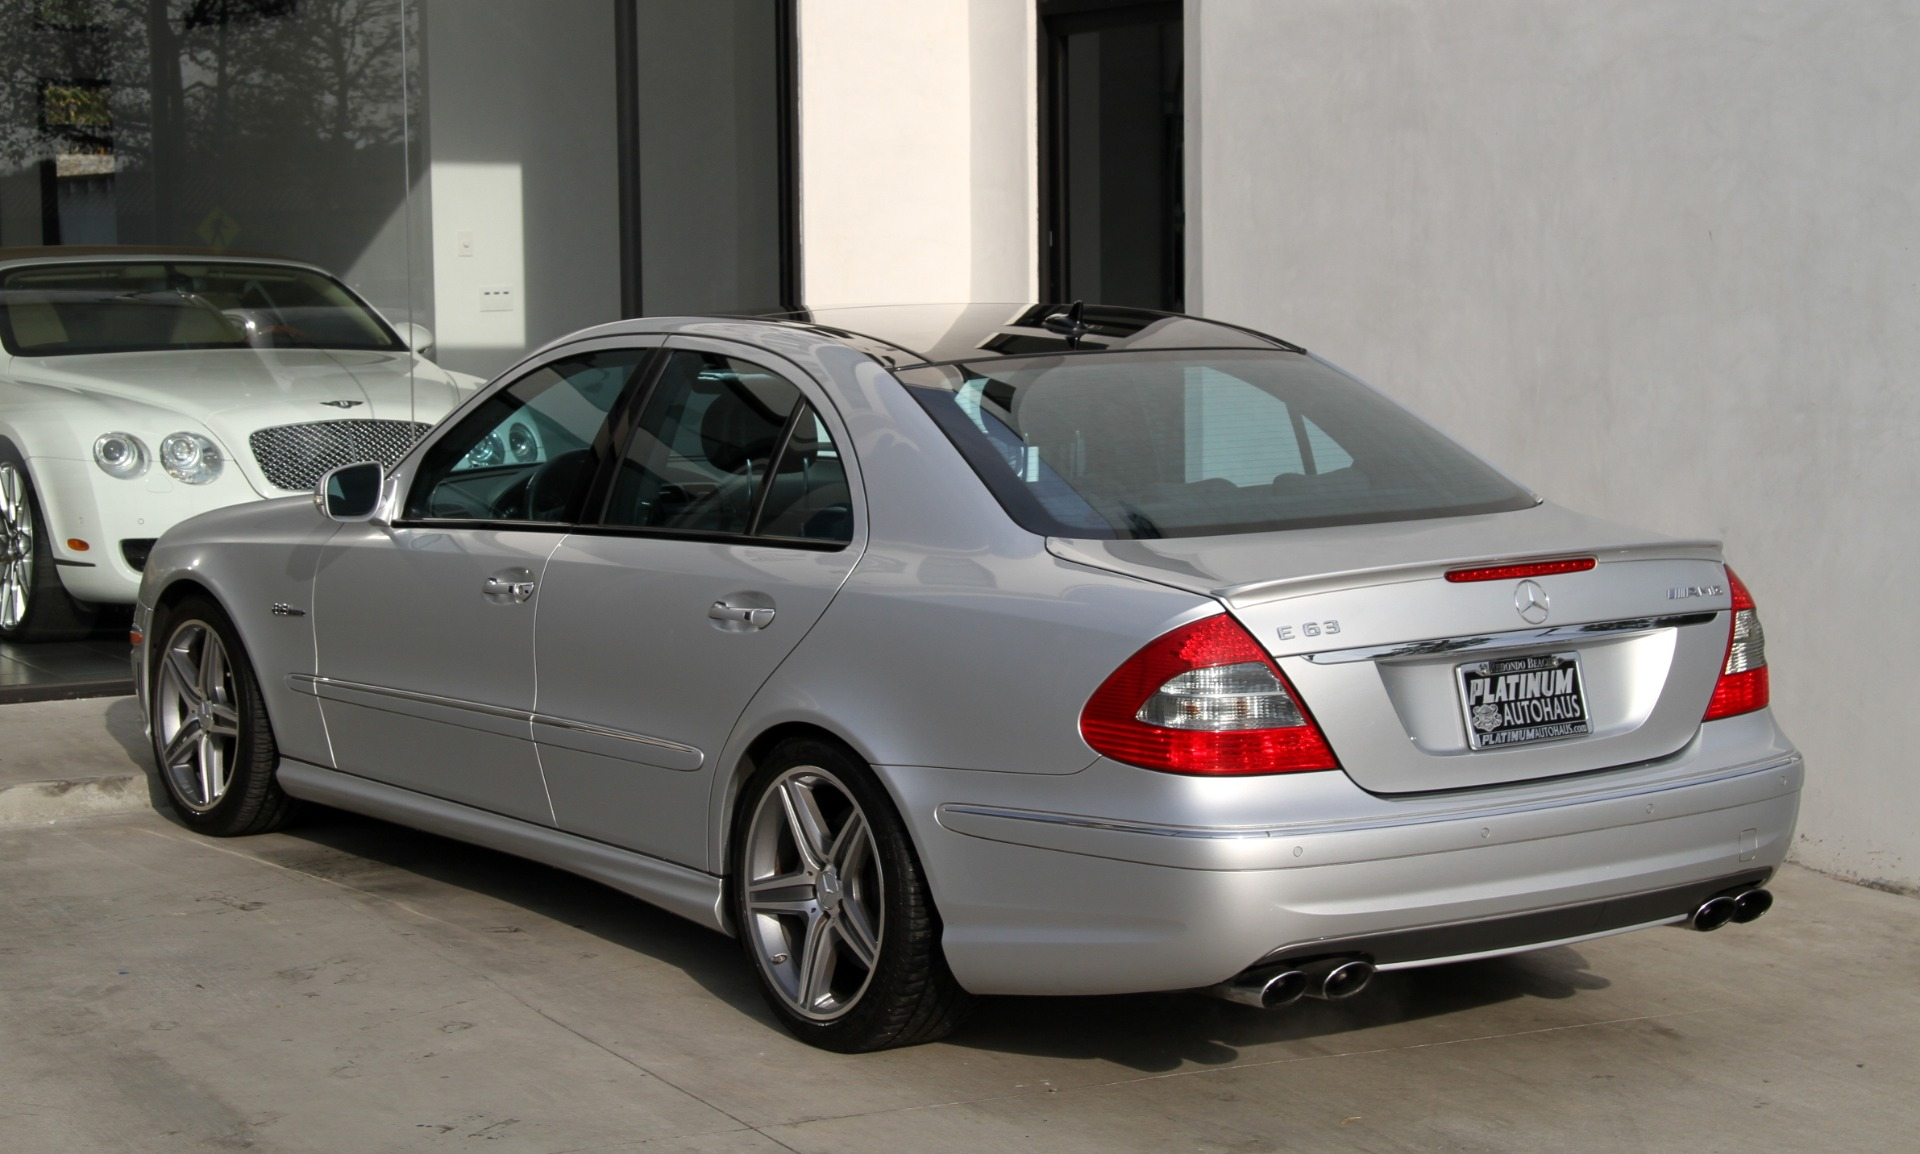 2009 mercedes benz e 63 amg 1 owner stock 6015a for Used mercedes benz for sale near me